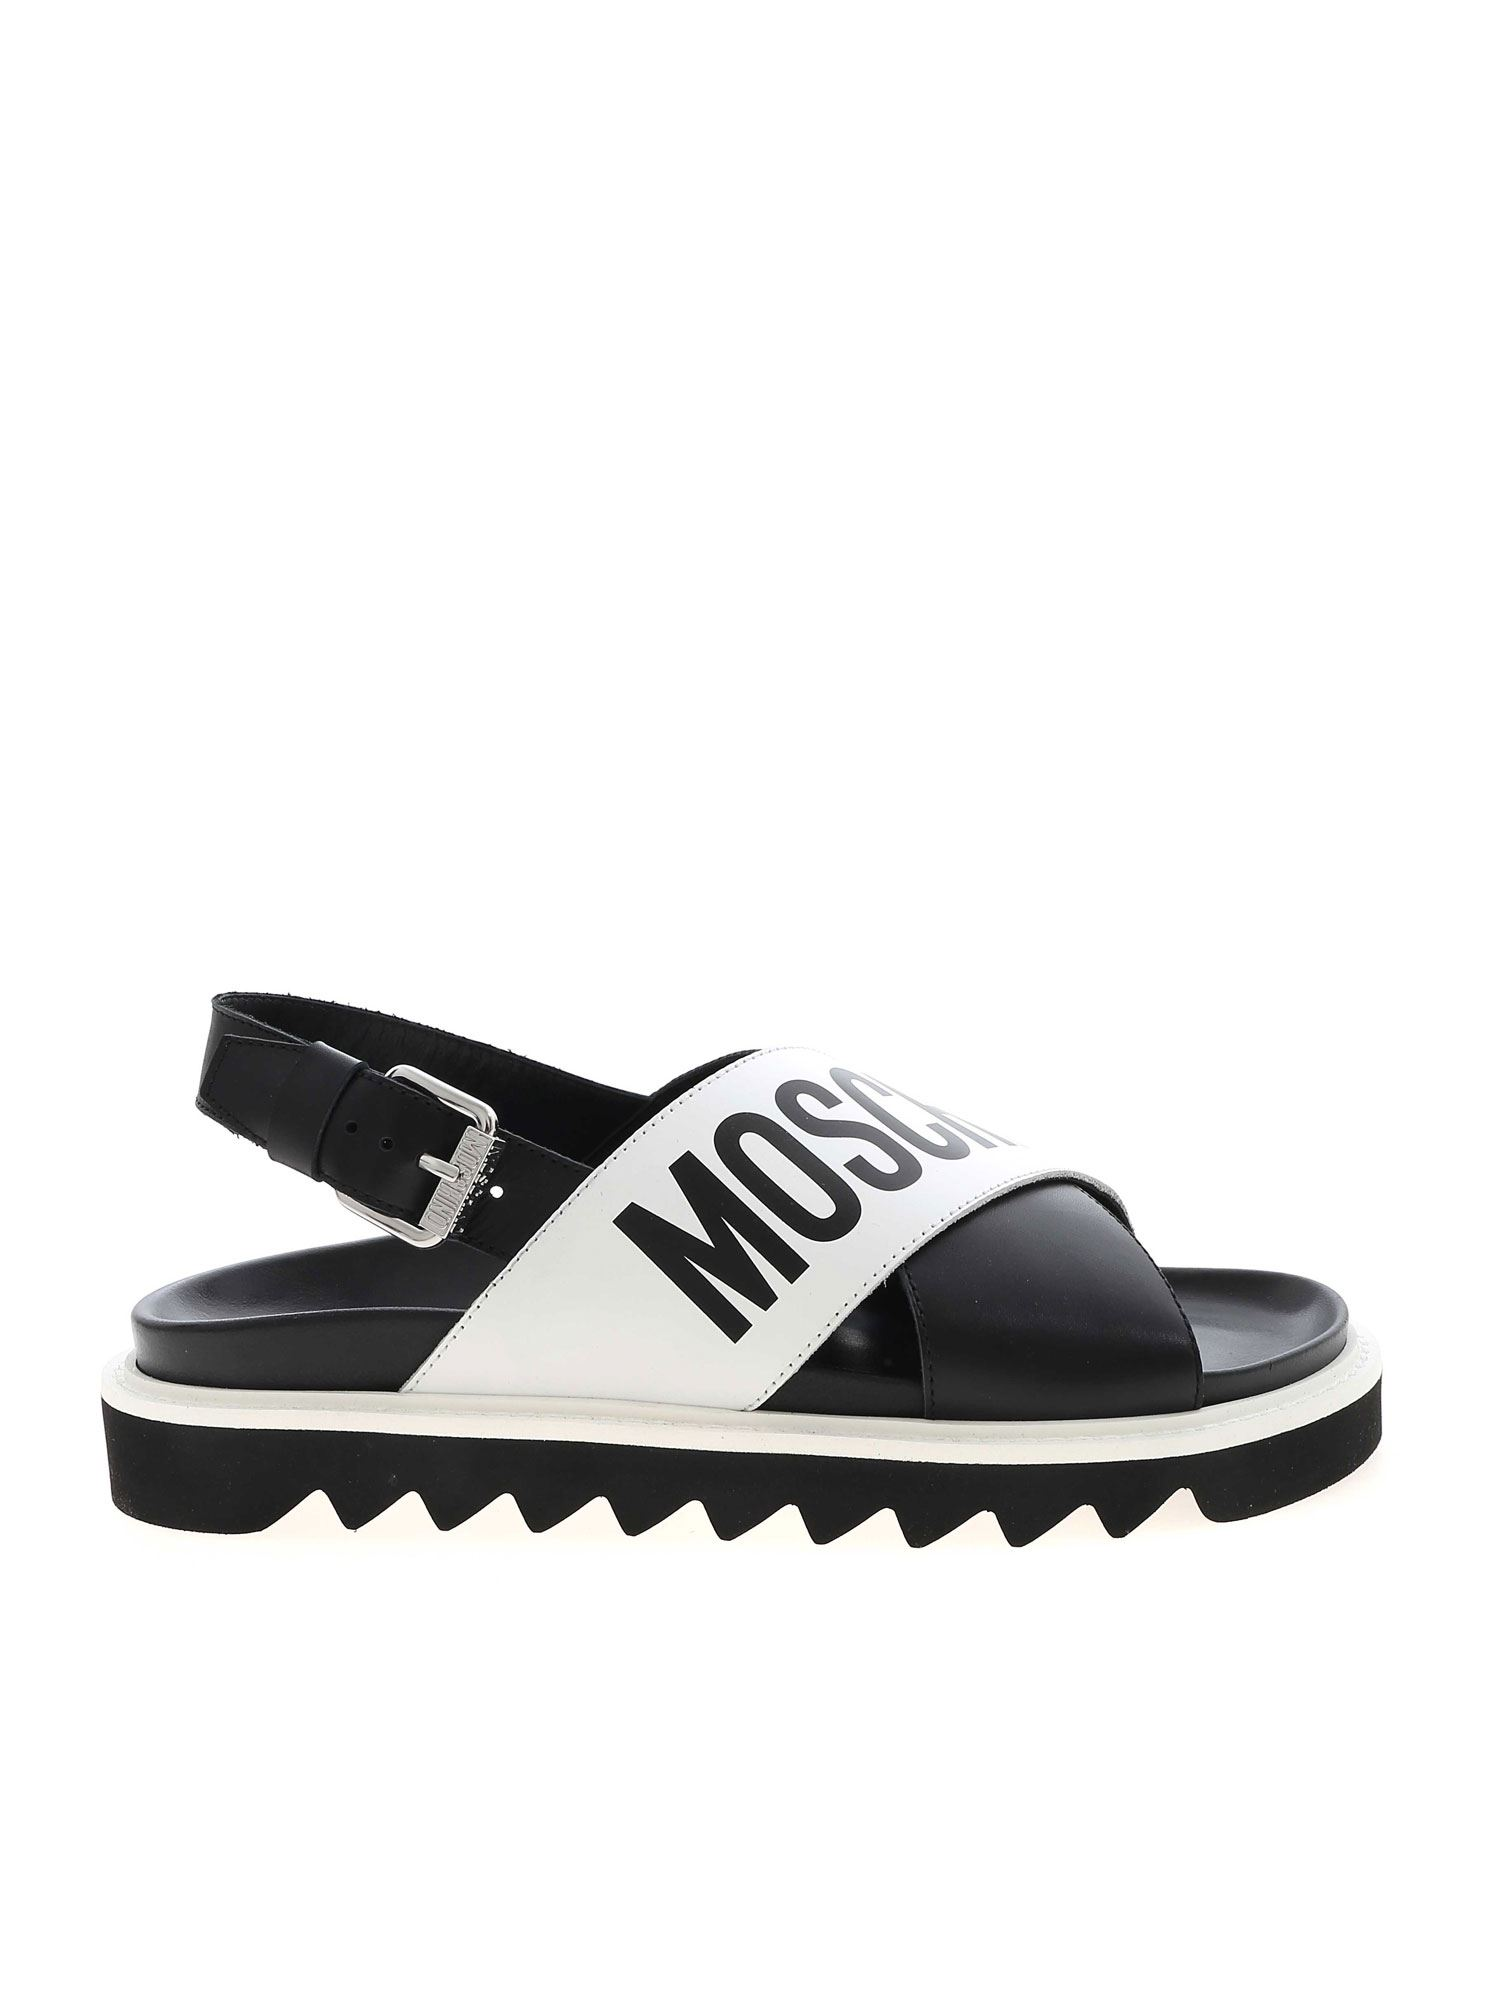 Moschino CROSSED SANDALS IN BLACK AND WHITE